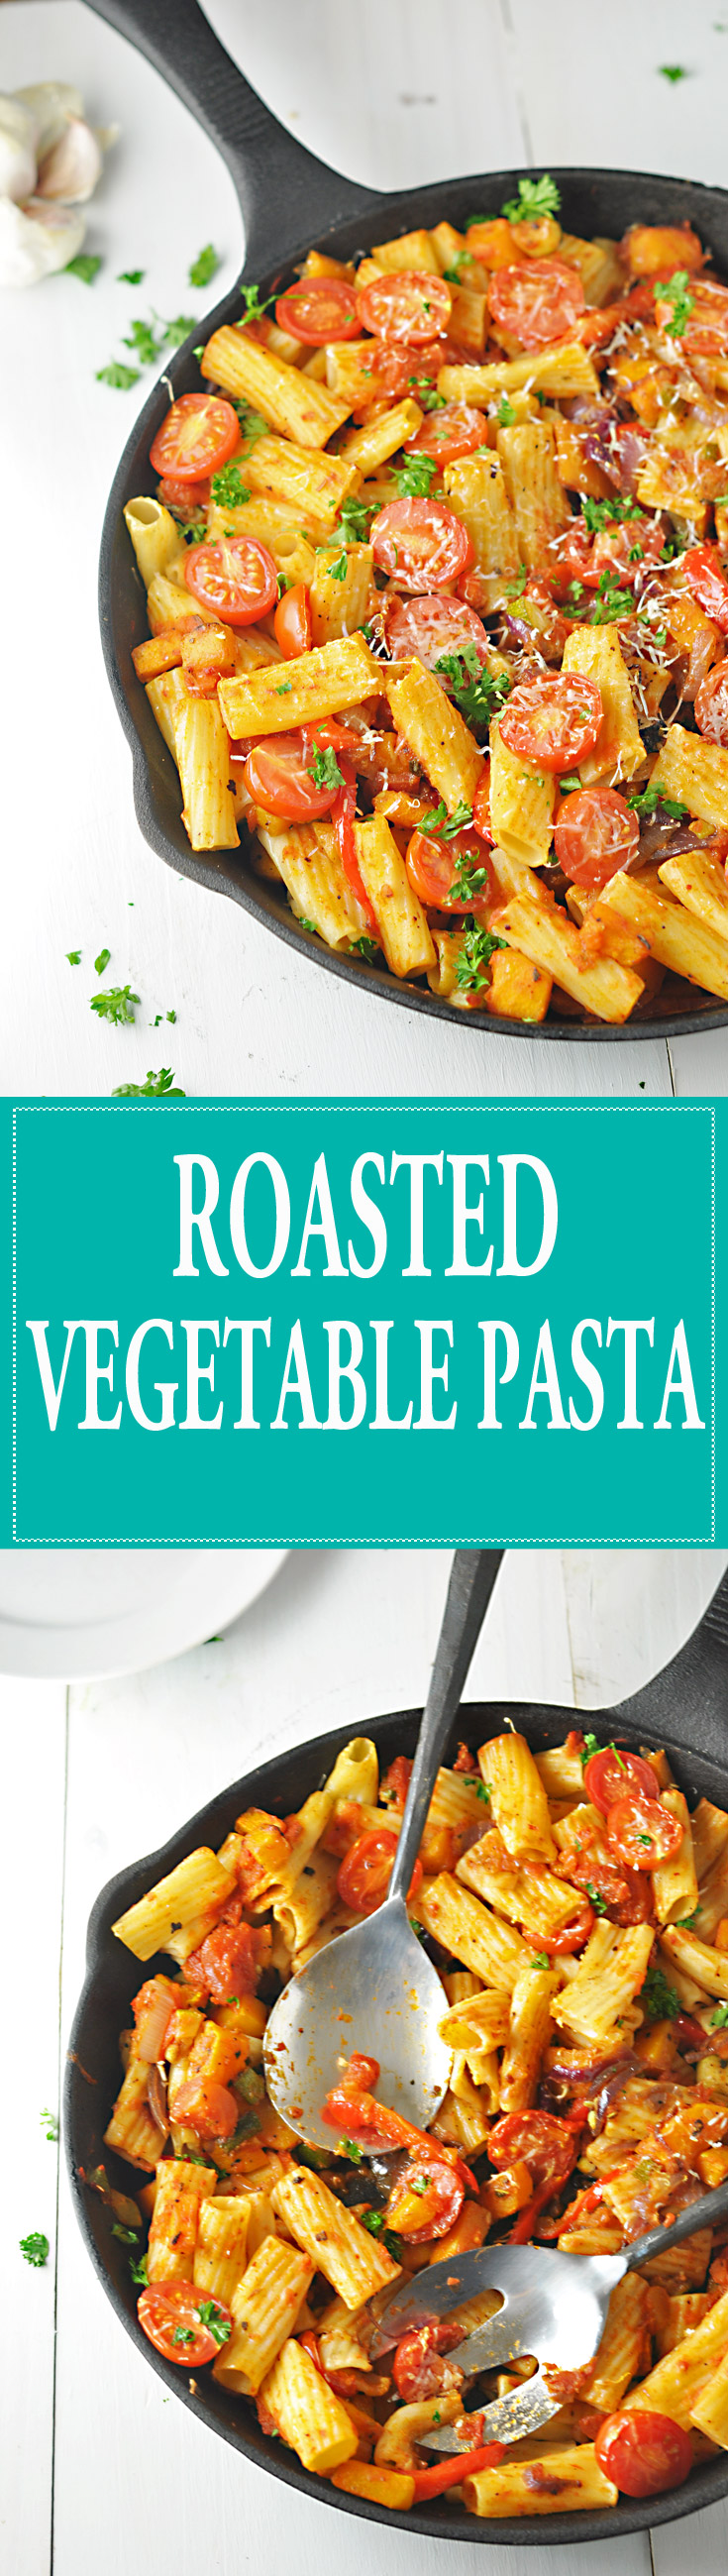 roasted-vegetable-pasta-pinterest